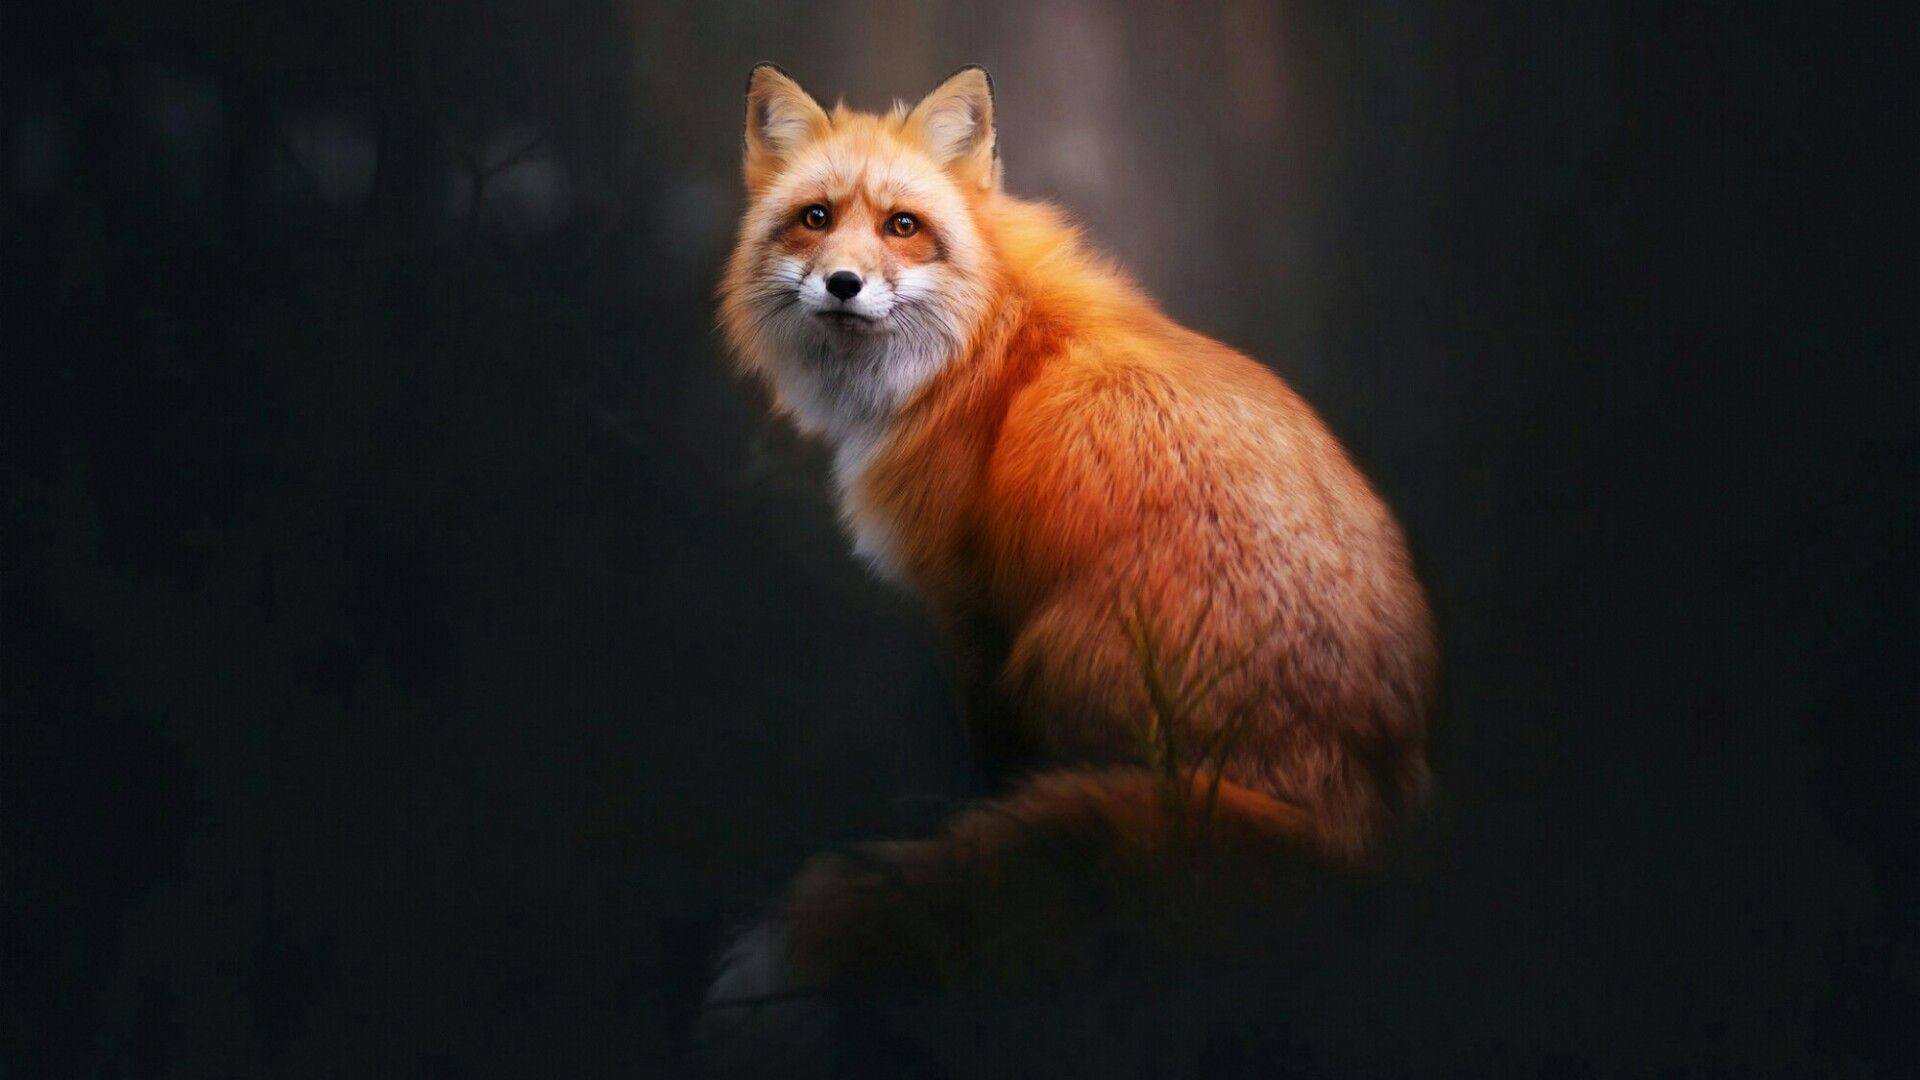 Red Fox Wallpaper Wallpaper Studio 10 Tens Of Thousands